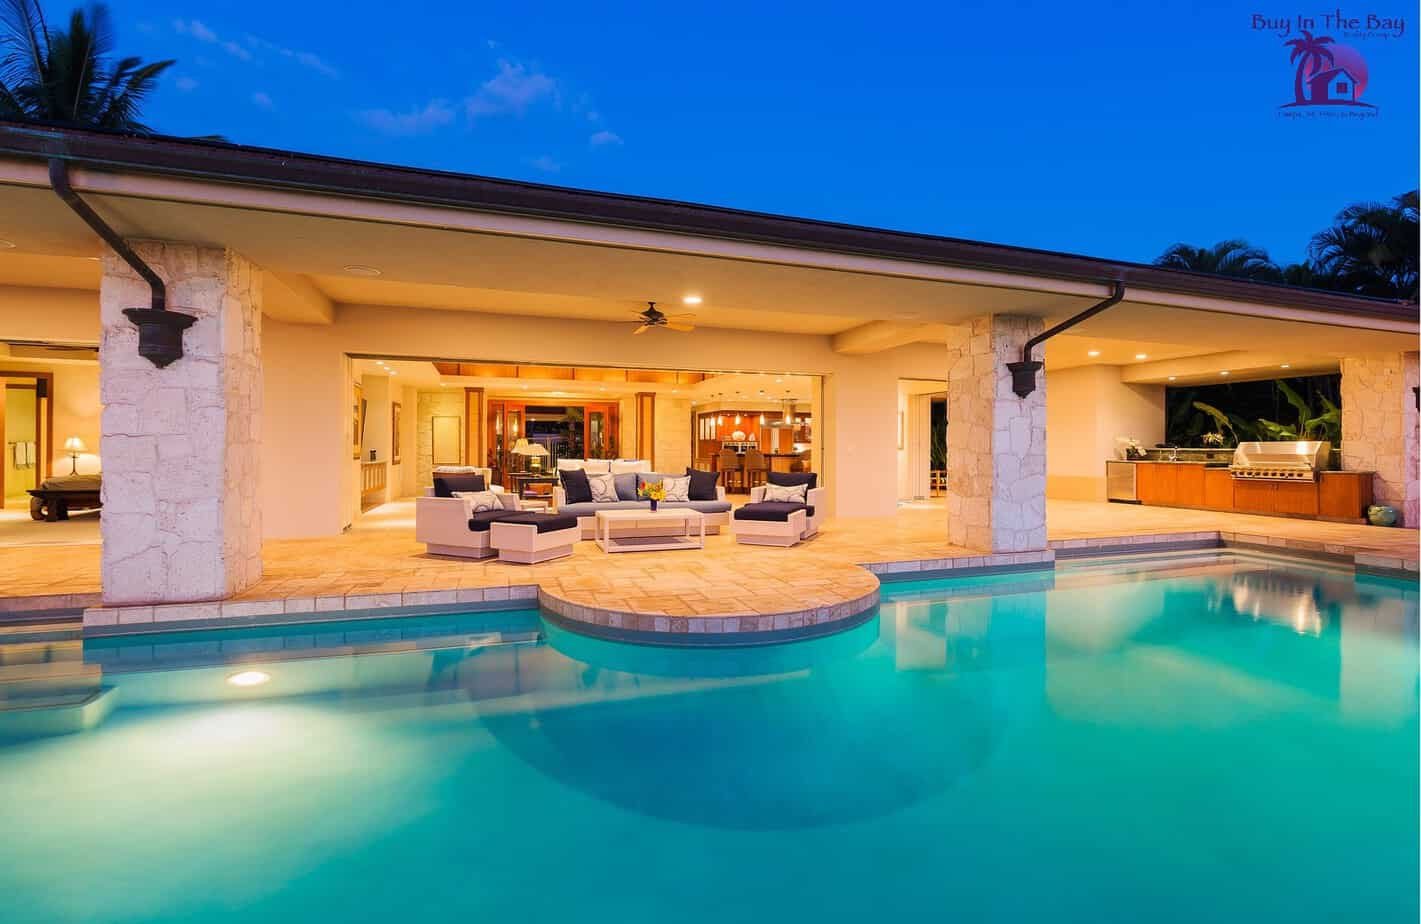 homes for sale in tampa florida with a pool buy in the bay realty rh buyinthebay com